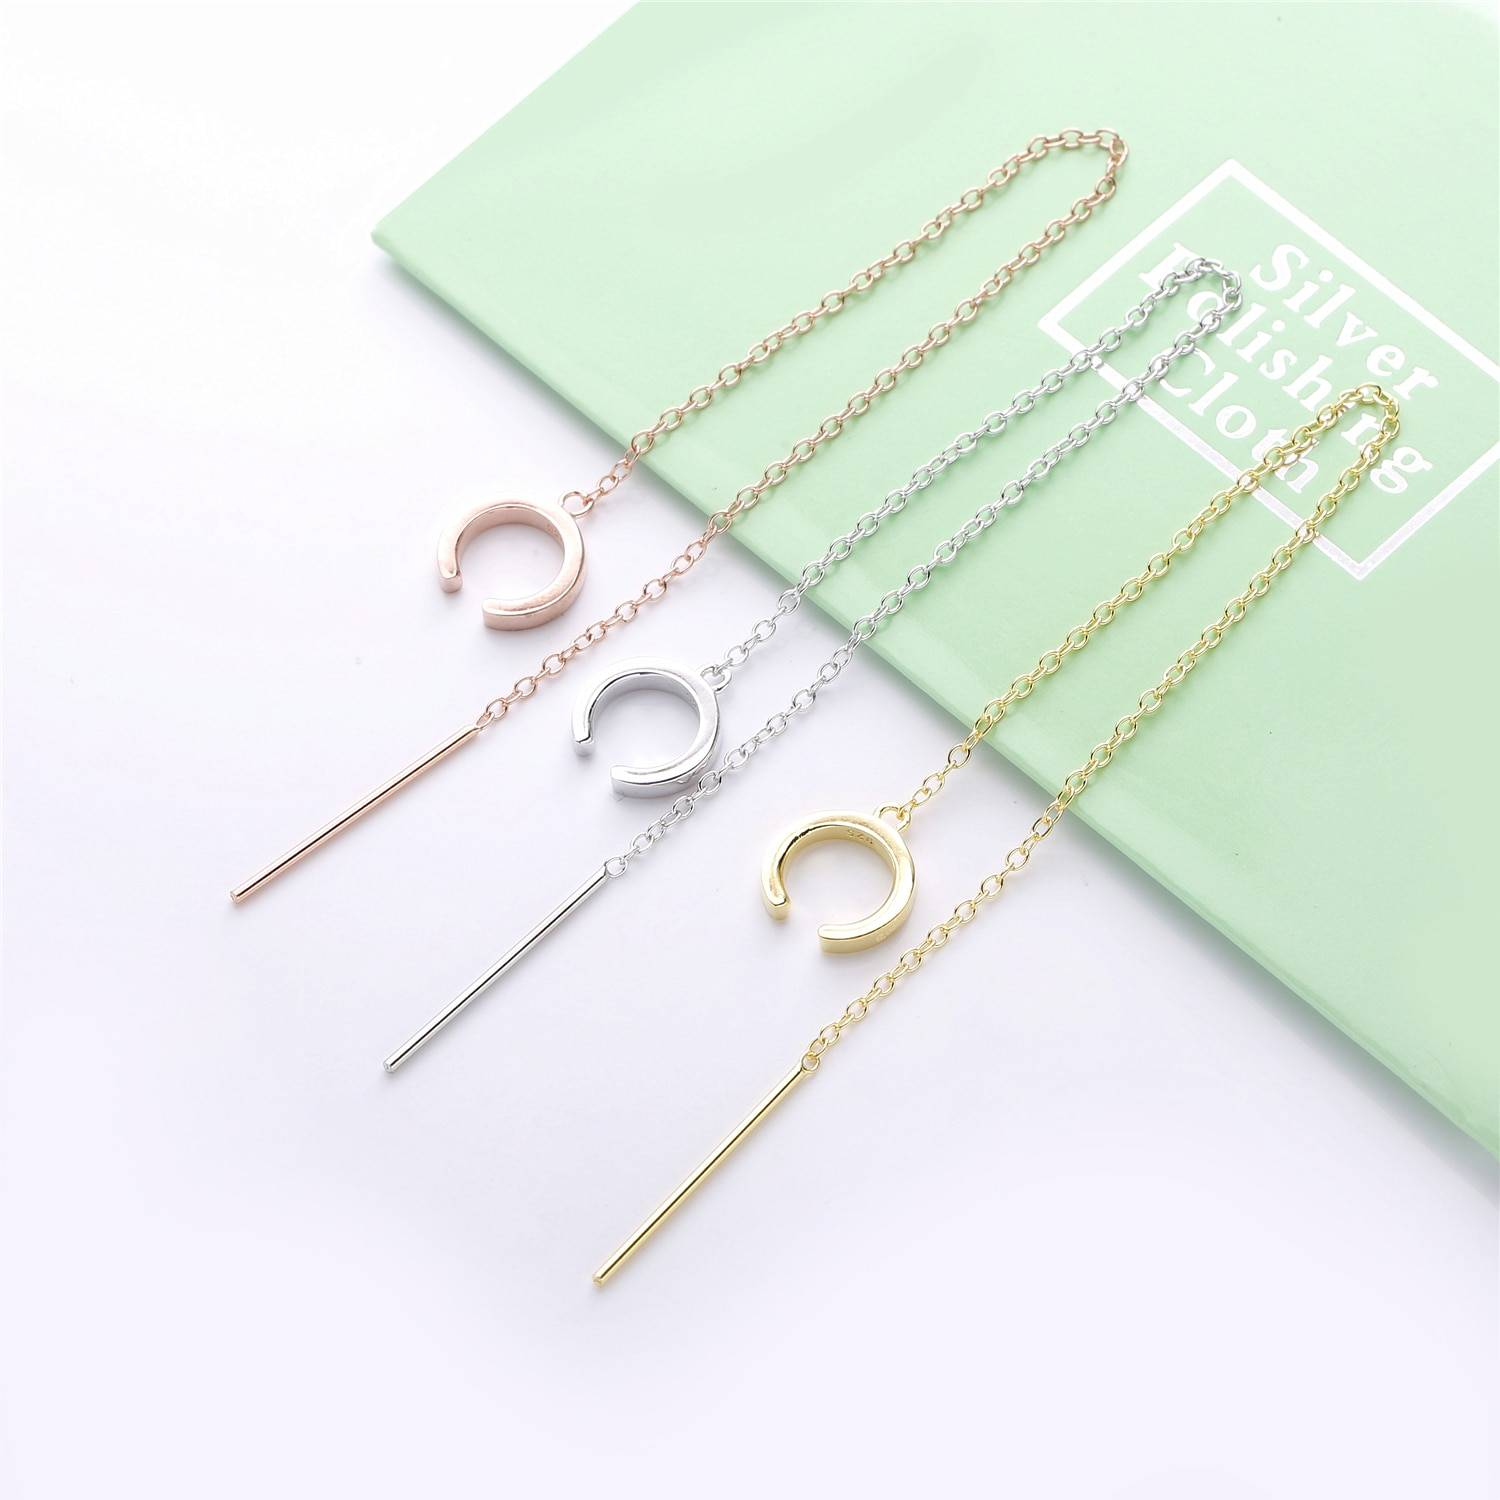 Minimalist Banded Chain Cuff Earring Earrings cb5feb1b7314637725a2e7: Gold 1|Gold 2|Rose Gold 1|Rose Gold 2|Silver 1|Silver 2